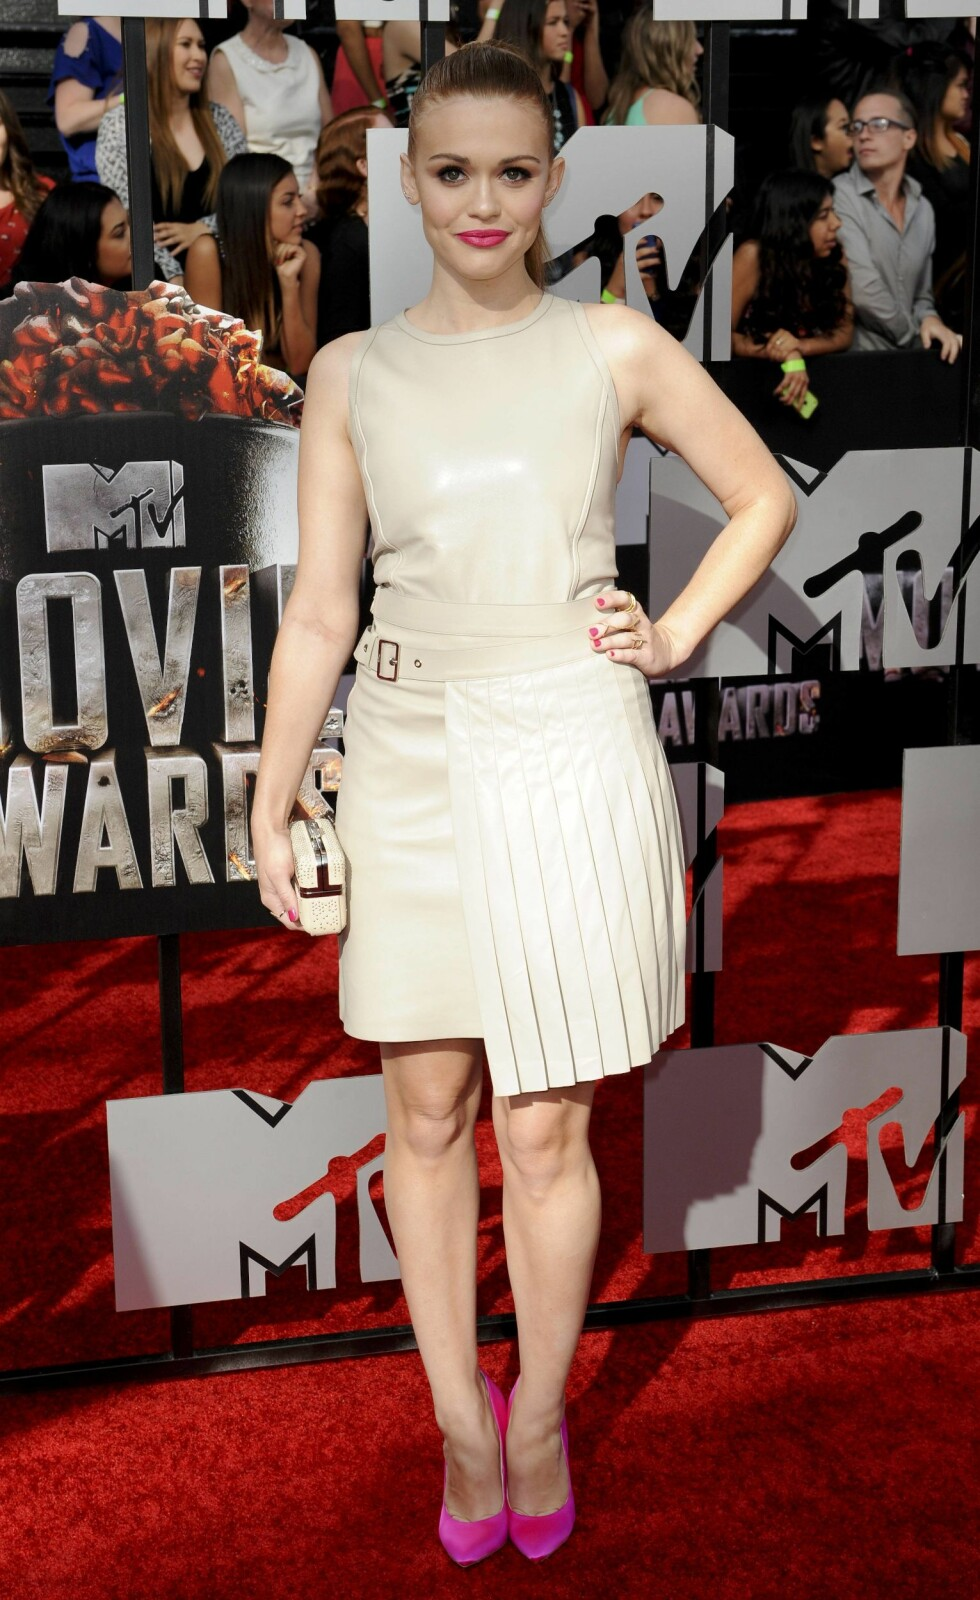 MTV: Holland Roden  Foto: imago/PicturePerfect/ All Over Press